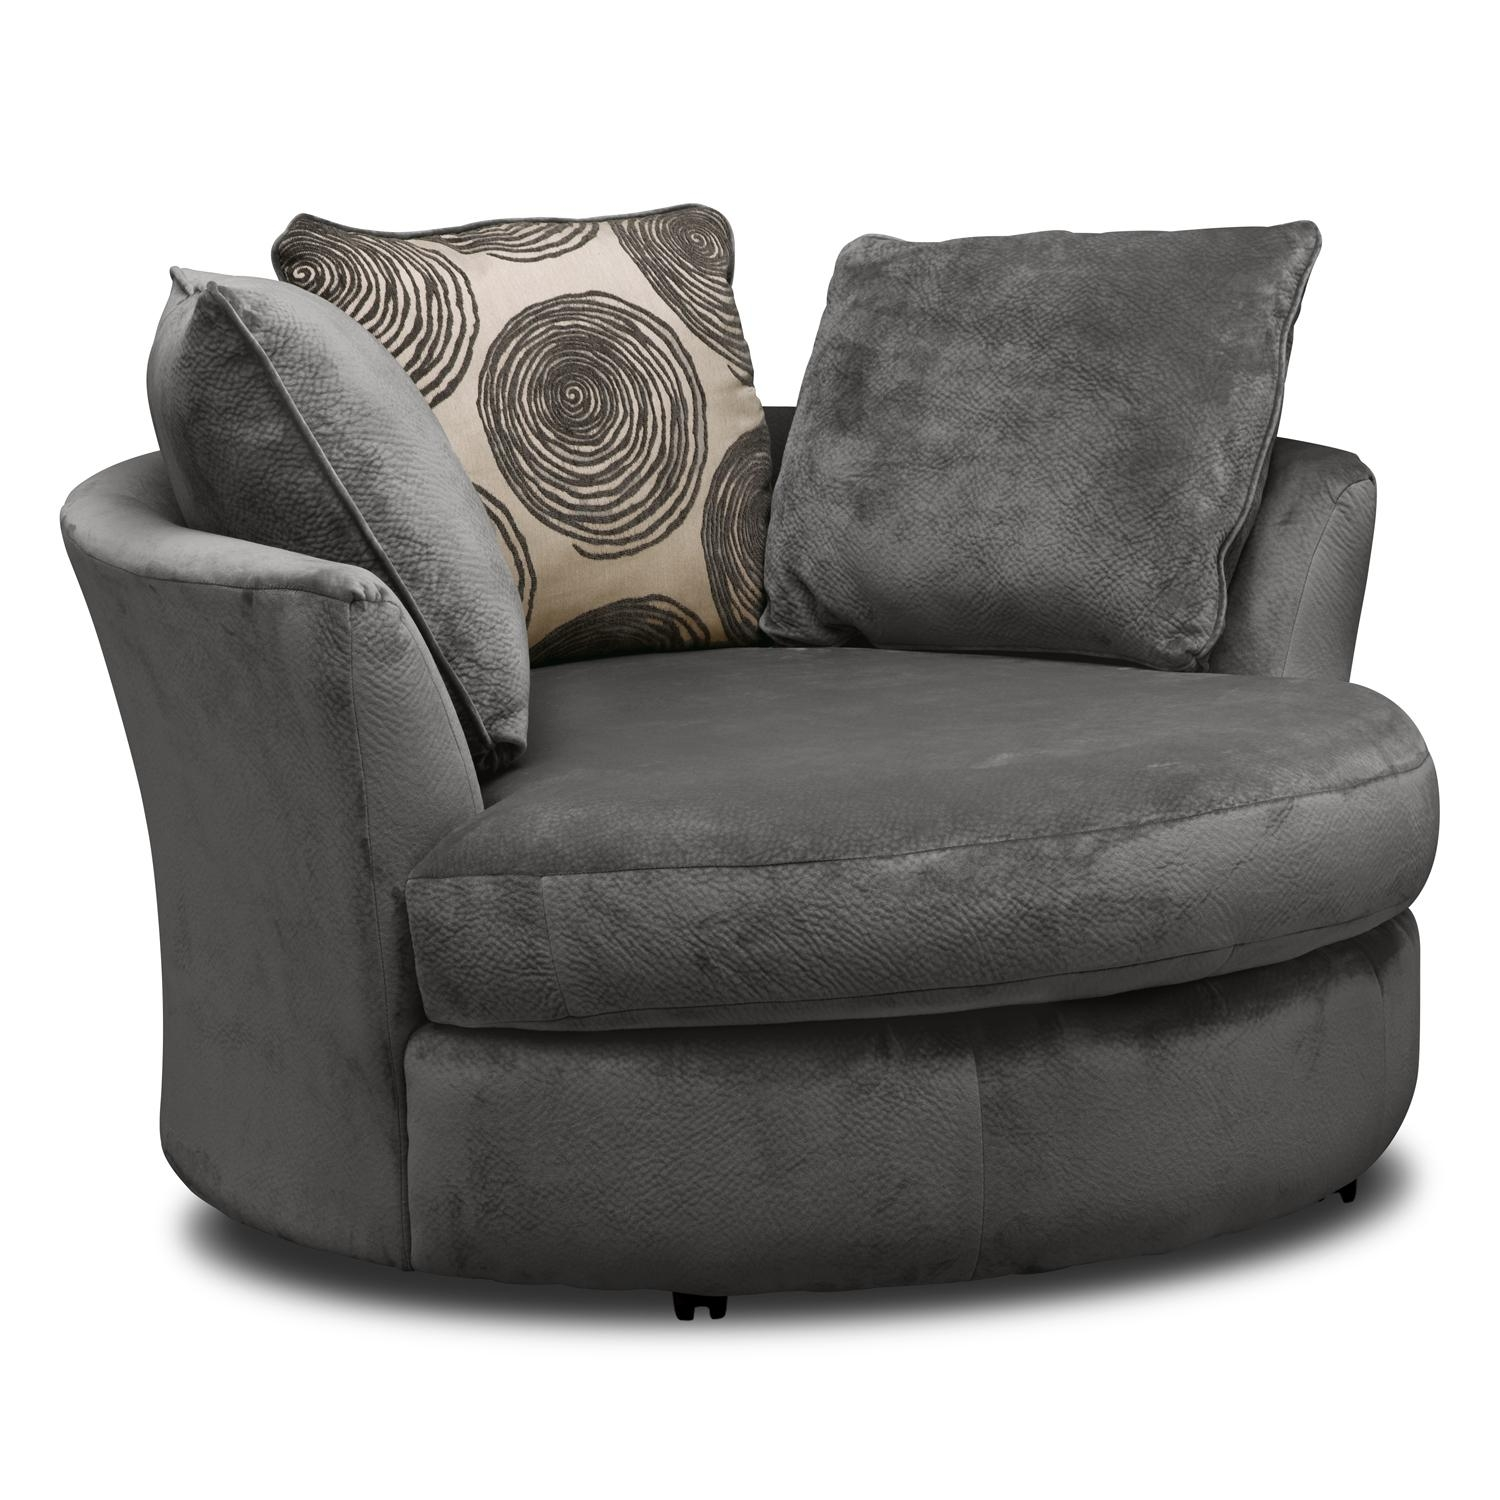 Big Sofa Chair 20 Ideas Of Large Sofa Chairs Sofa Ideas